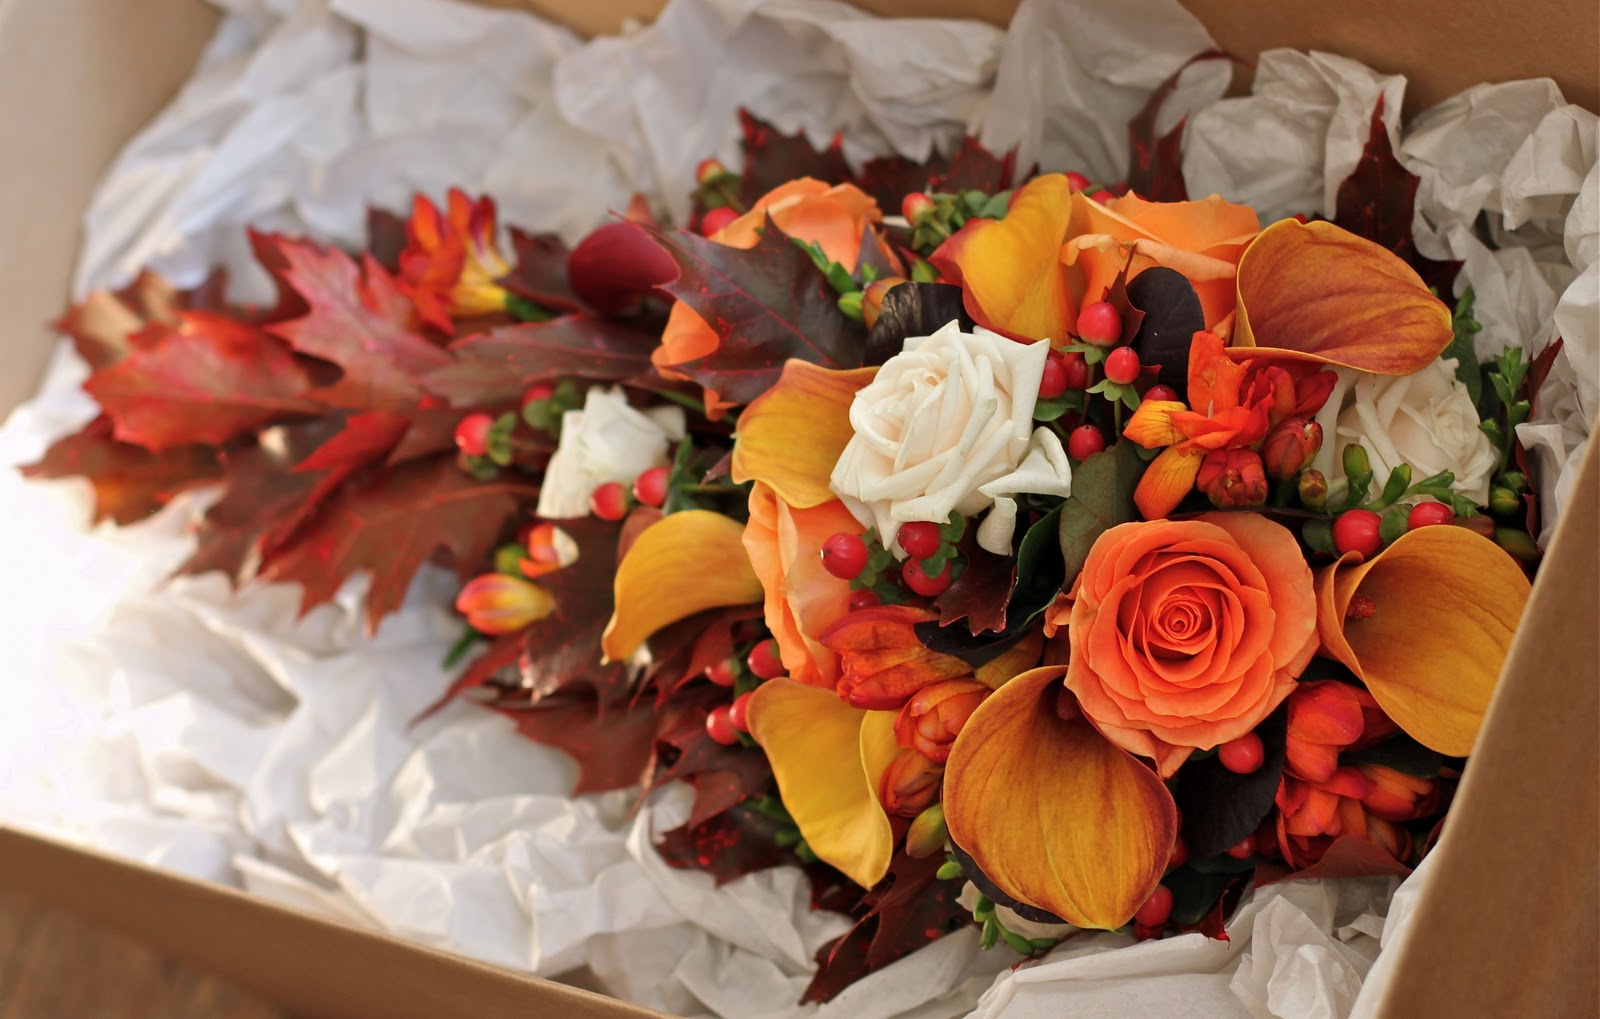 Wedding Flowers Blog: Alison's Autumn Wedding Flowers